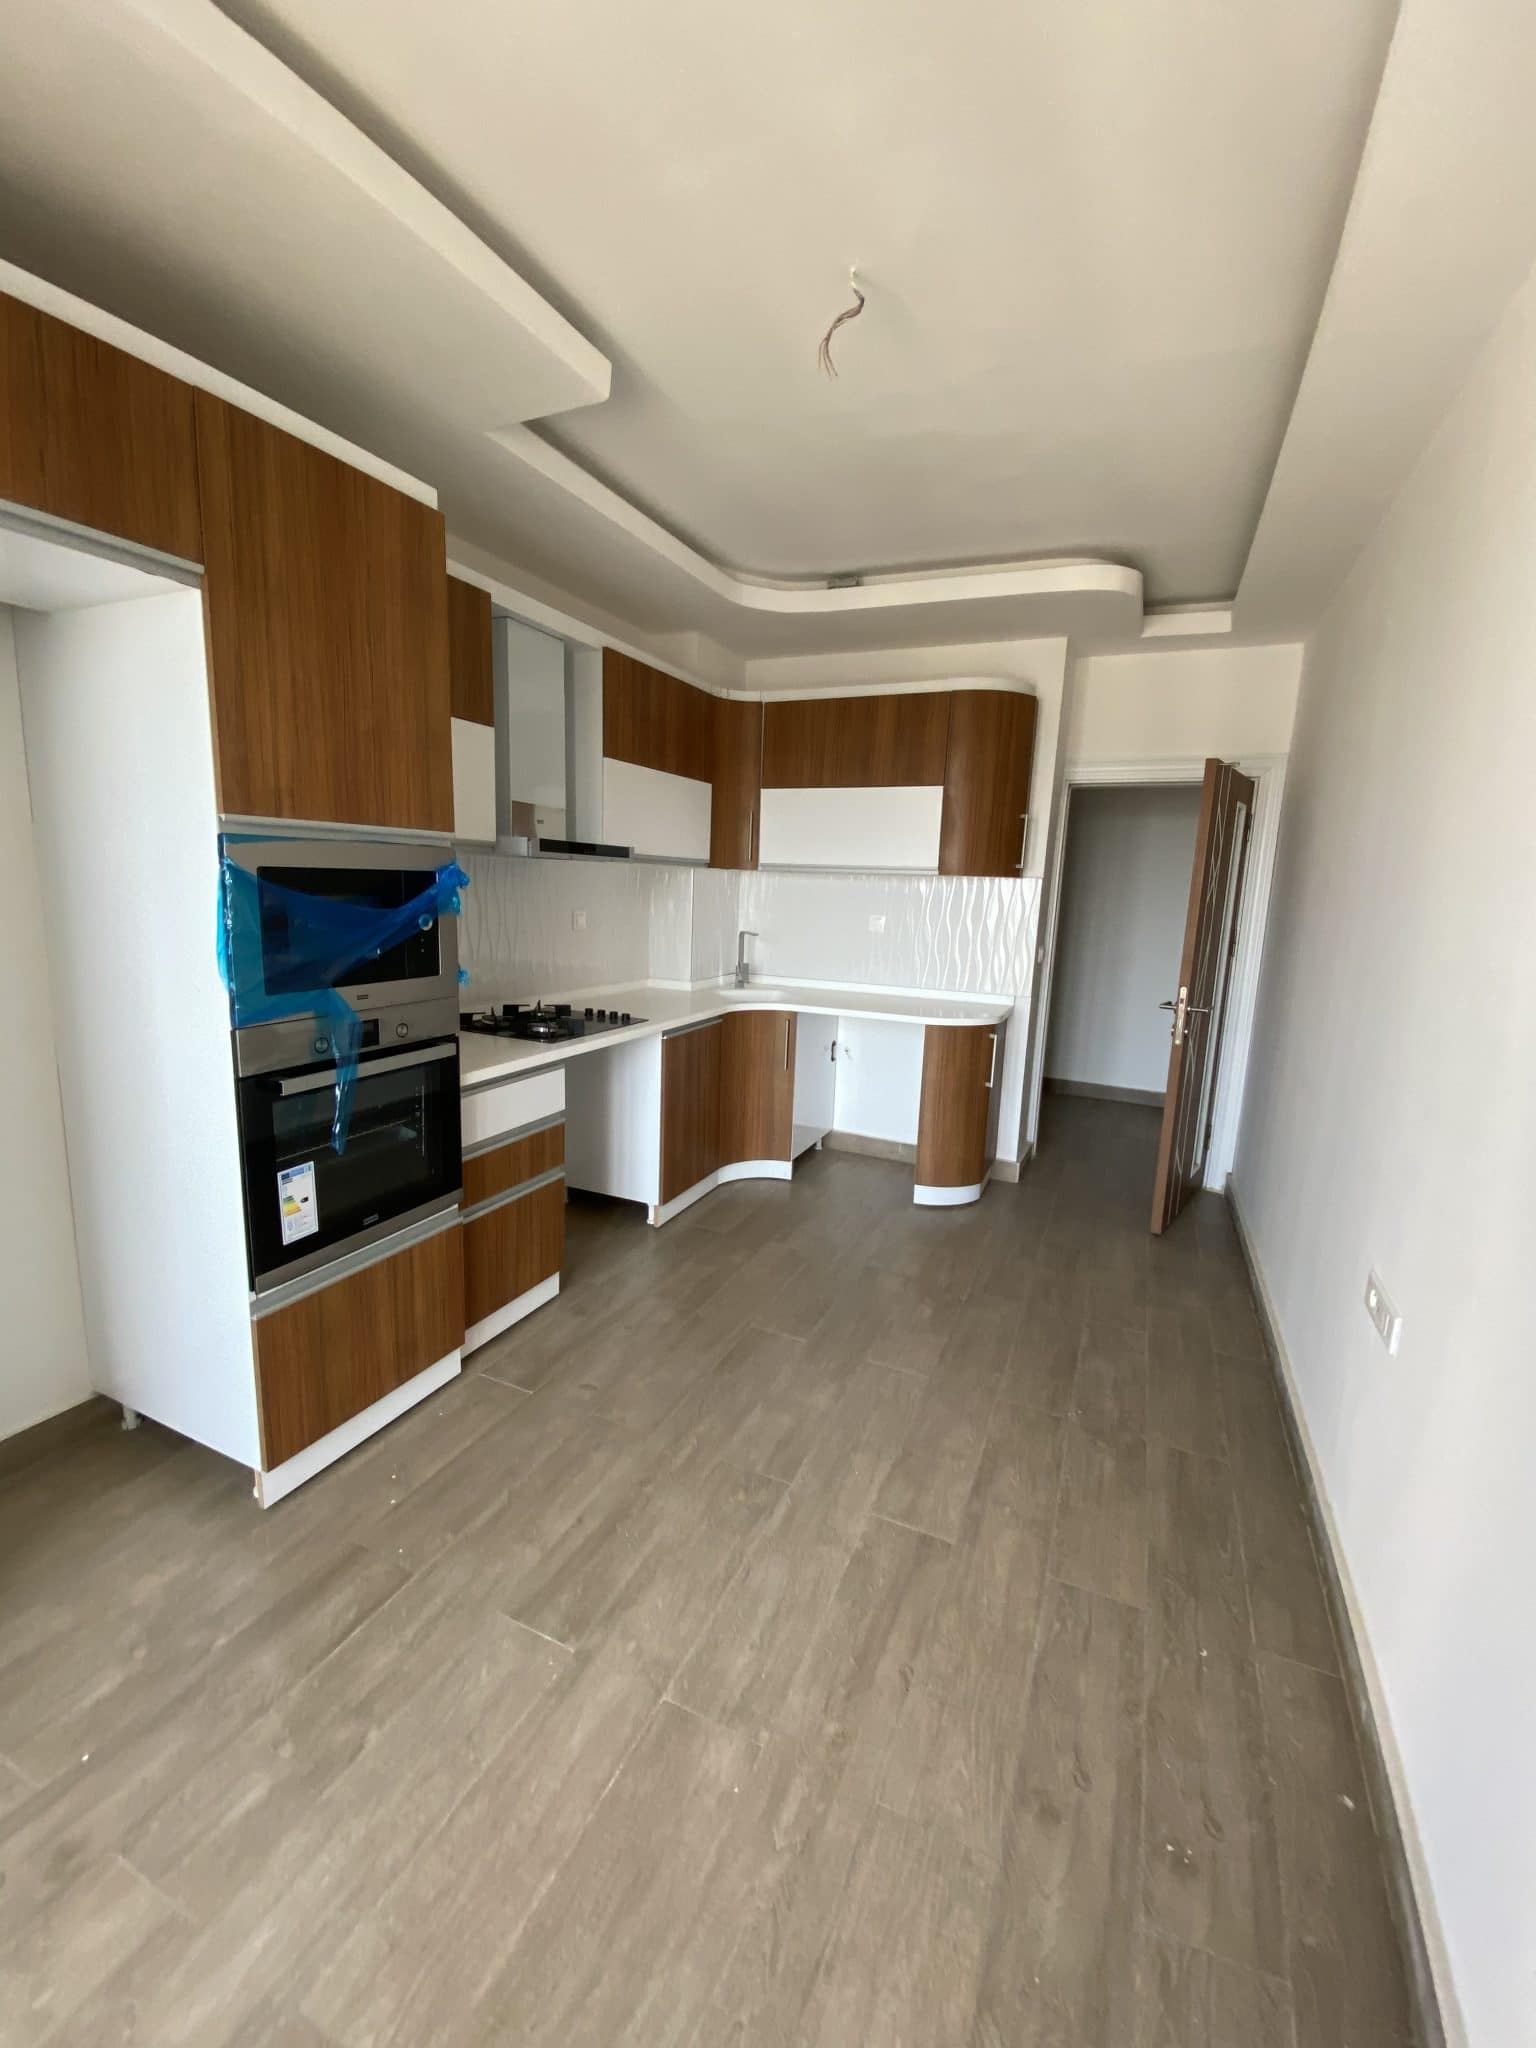 Appartement à vendre Dakar Point E